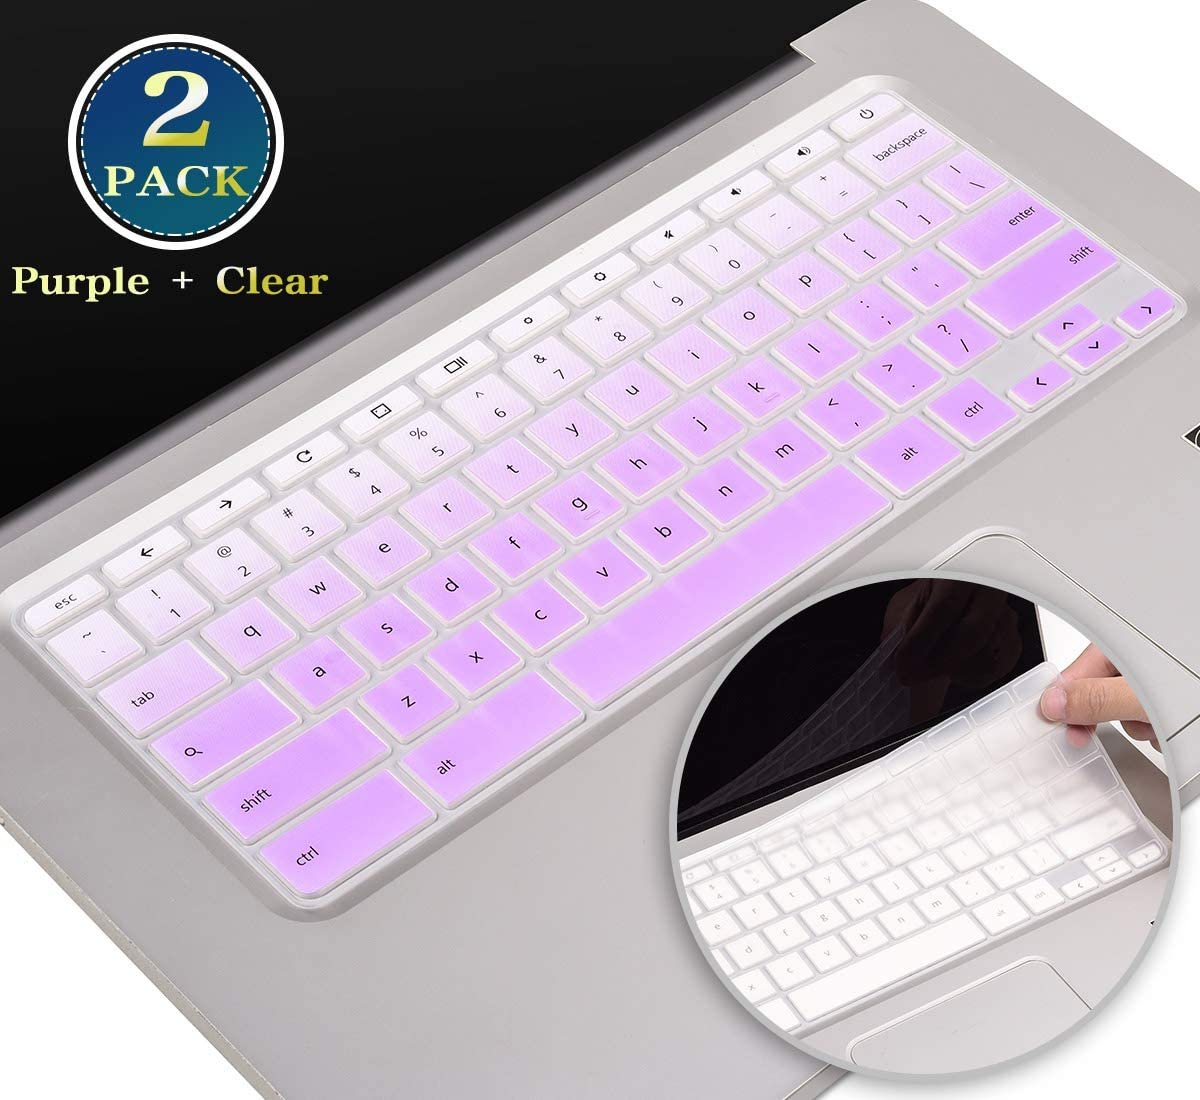 Silicone Keyboard Cover Skin for HP Chromebook 11 G2, G3, G4, G5, G6 EE, G7 EE Series, HP Chromebook 14 G2 G3 G4 G5 Series, HP Chromebook 14-ak 14-ca 14-db 14-X Series (Ombre Purple+Clear)